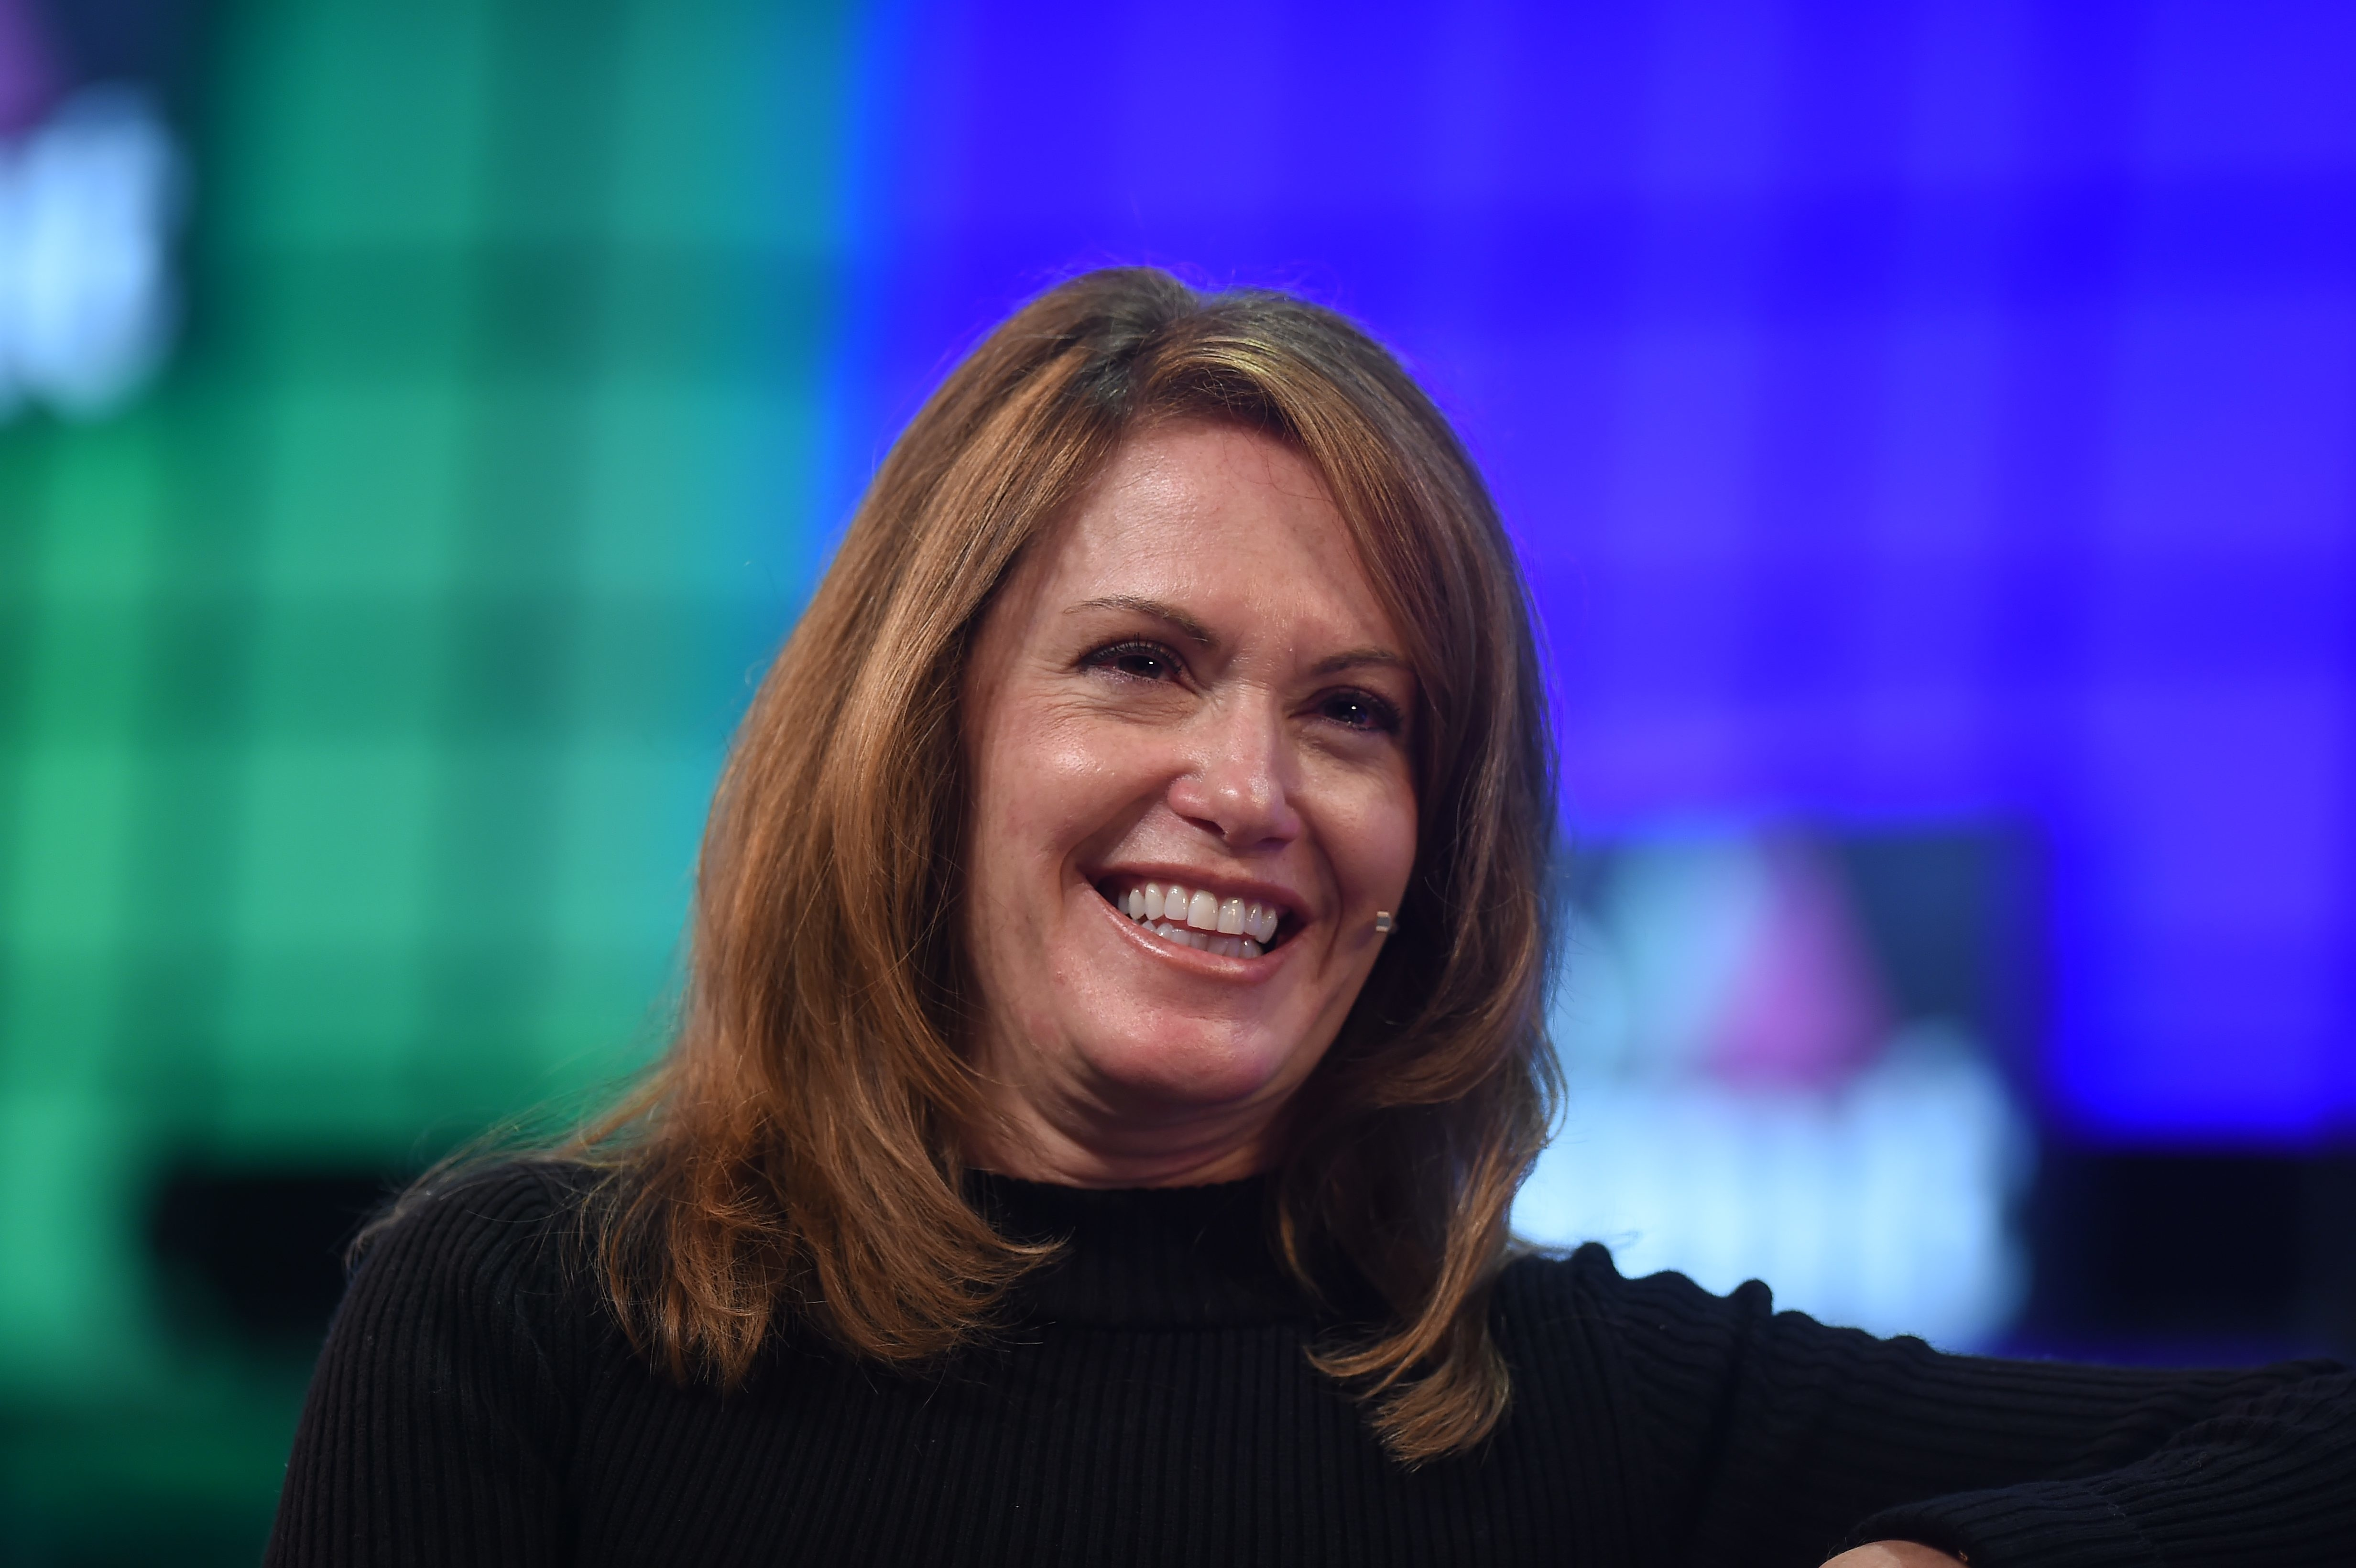 3 November 2015; Peggy Johnson, EVP of Business Development, Microsoft, on the Centre Stage during Day 1 of the 2015 Web Summit in the RDS, Dublin, Ireland.